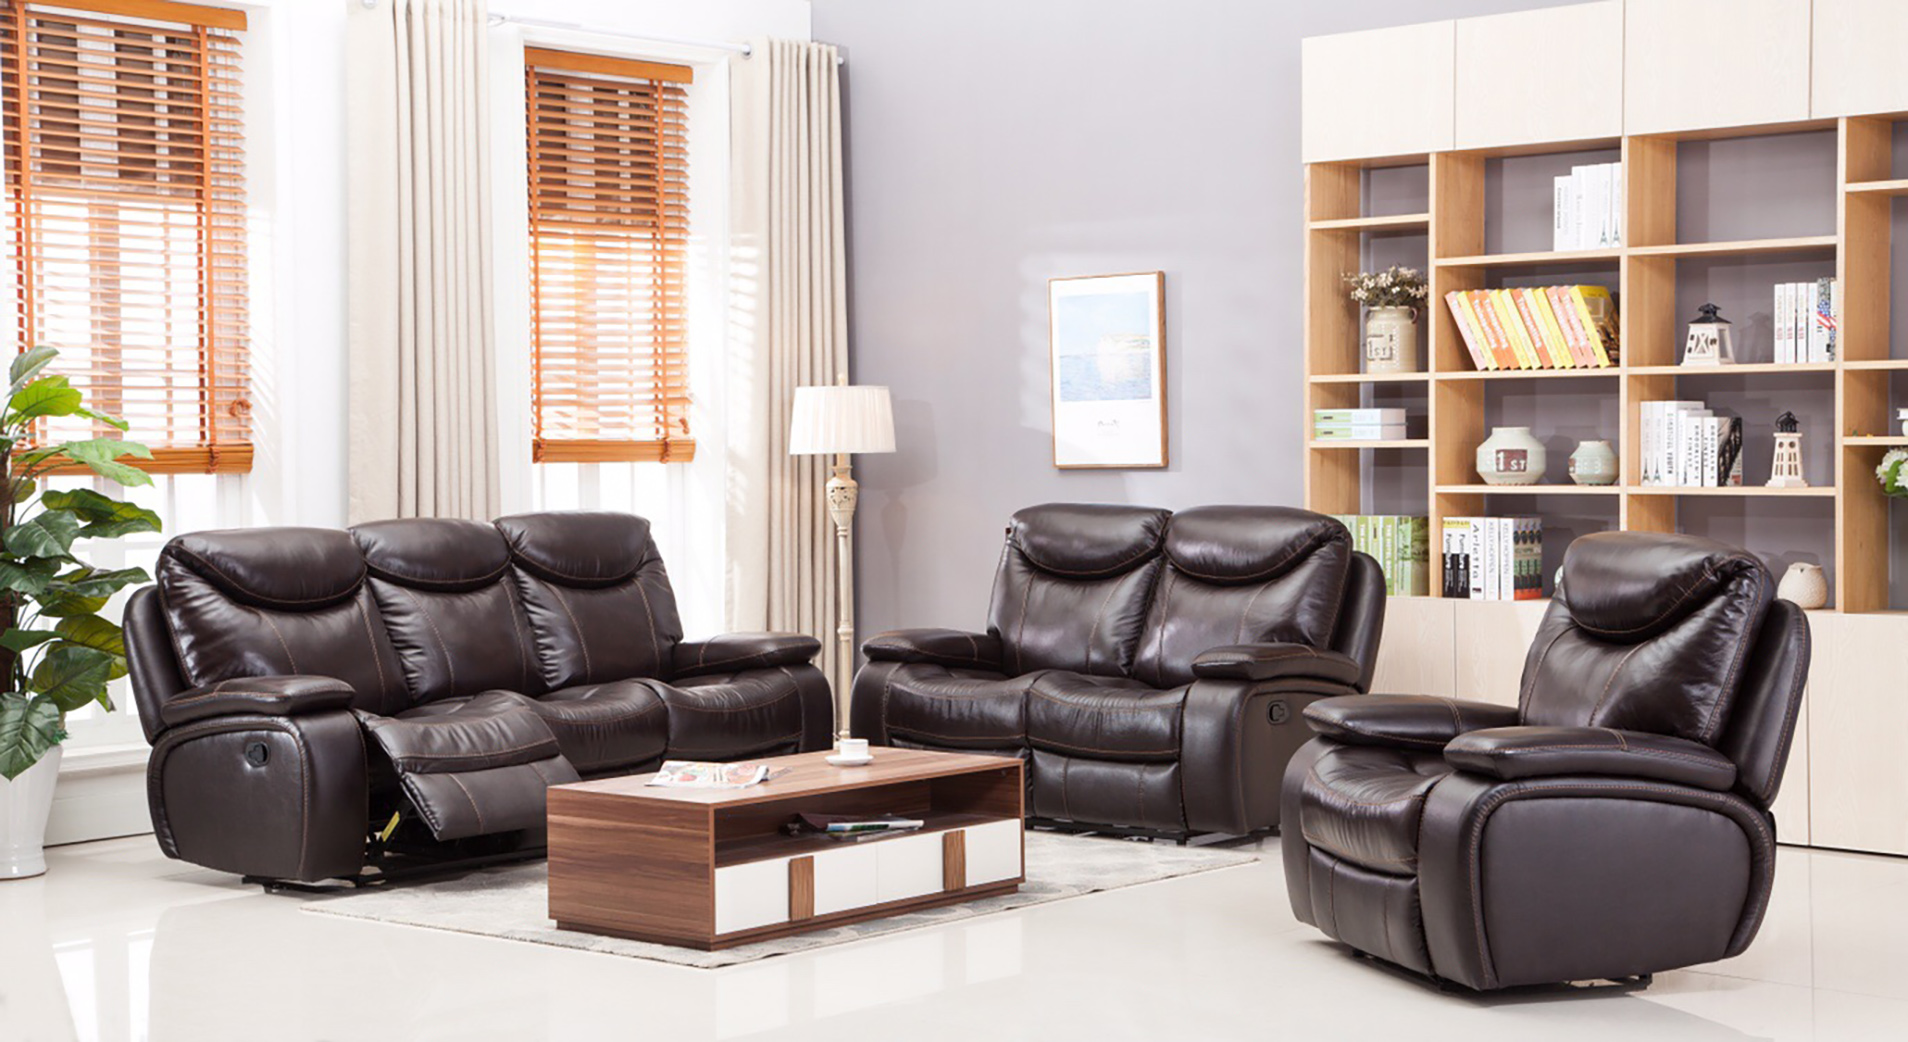 Dallas Recliner Leather Sofa Set Furtado Furniture